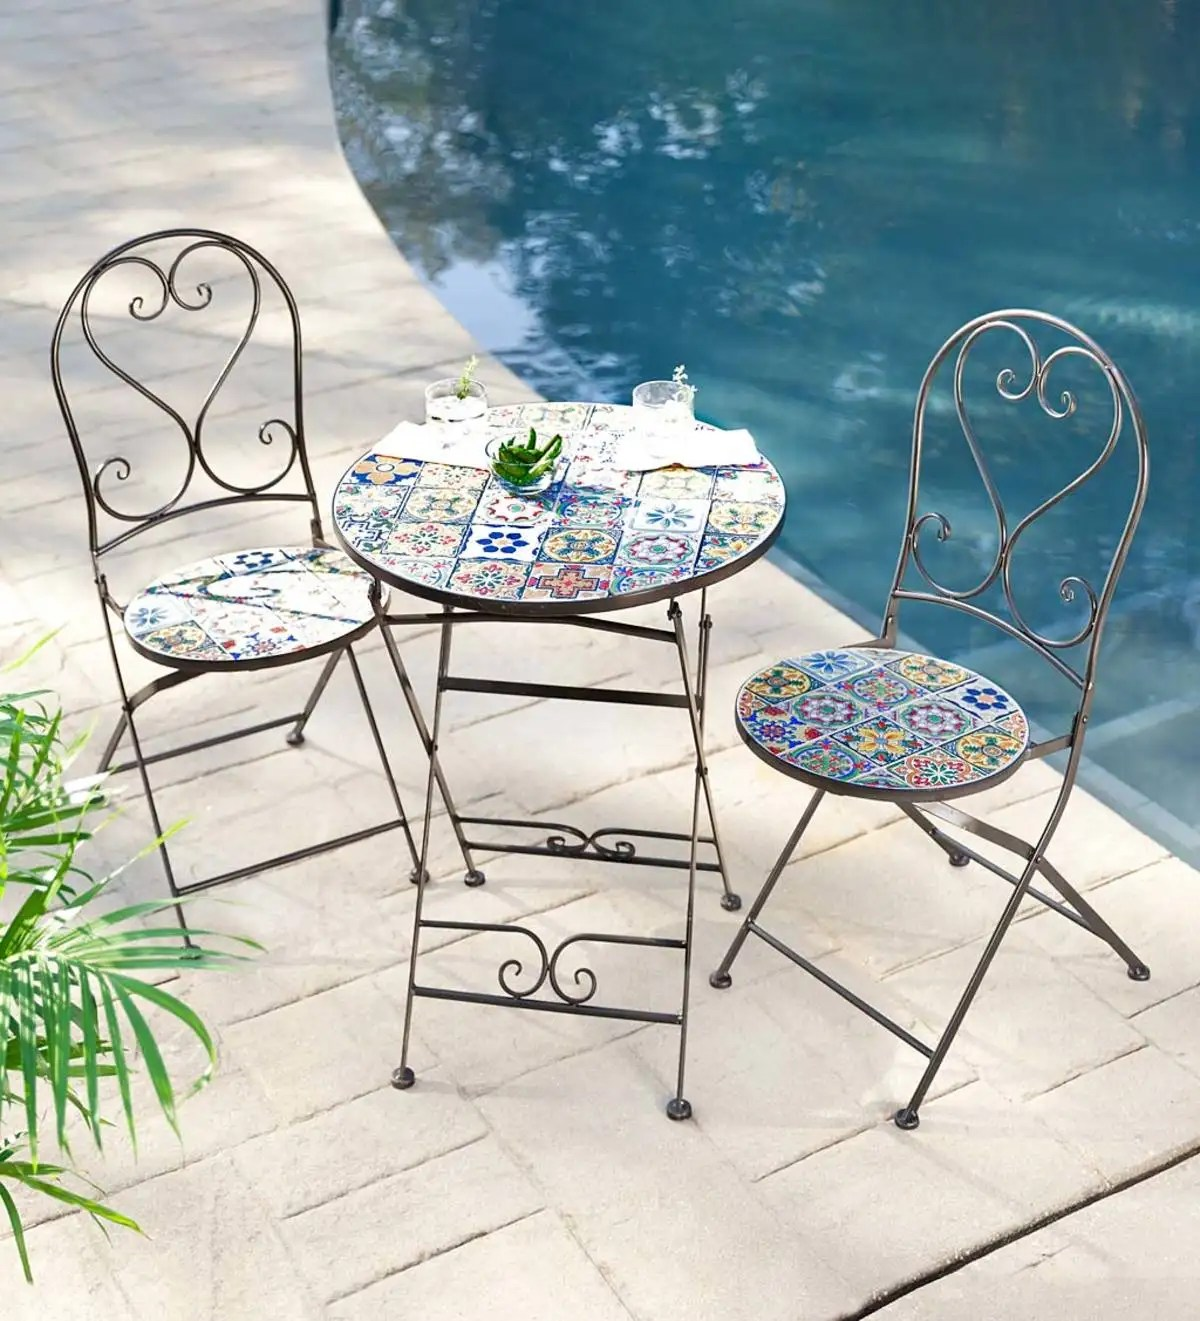 mosaic tile 3 piece bistro set with folding chairs and table